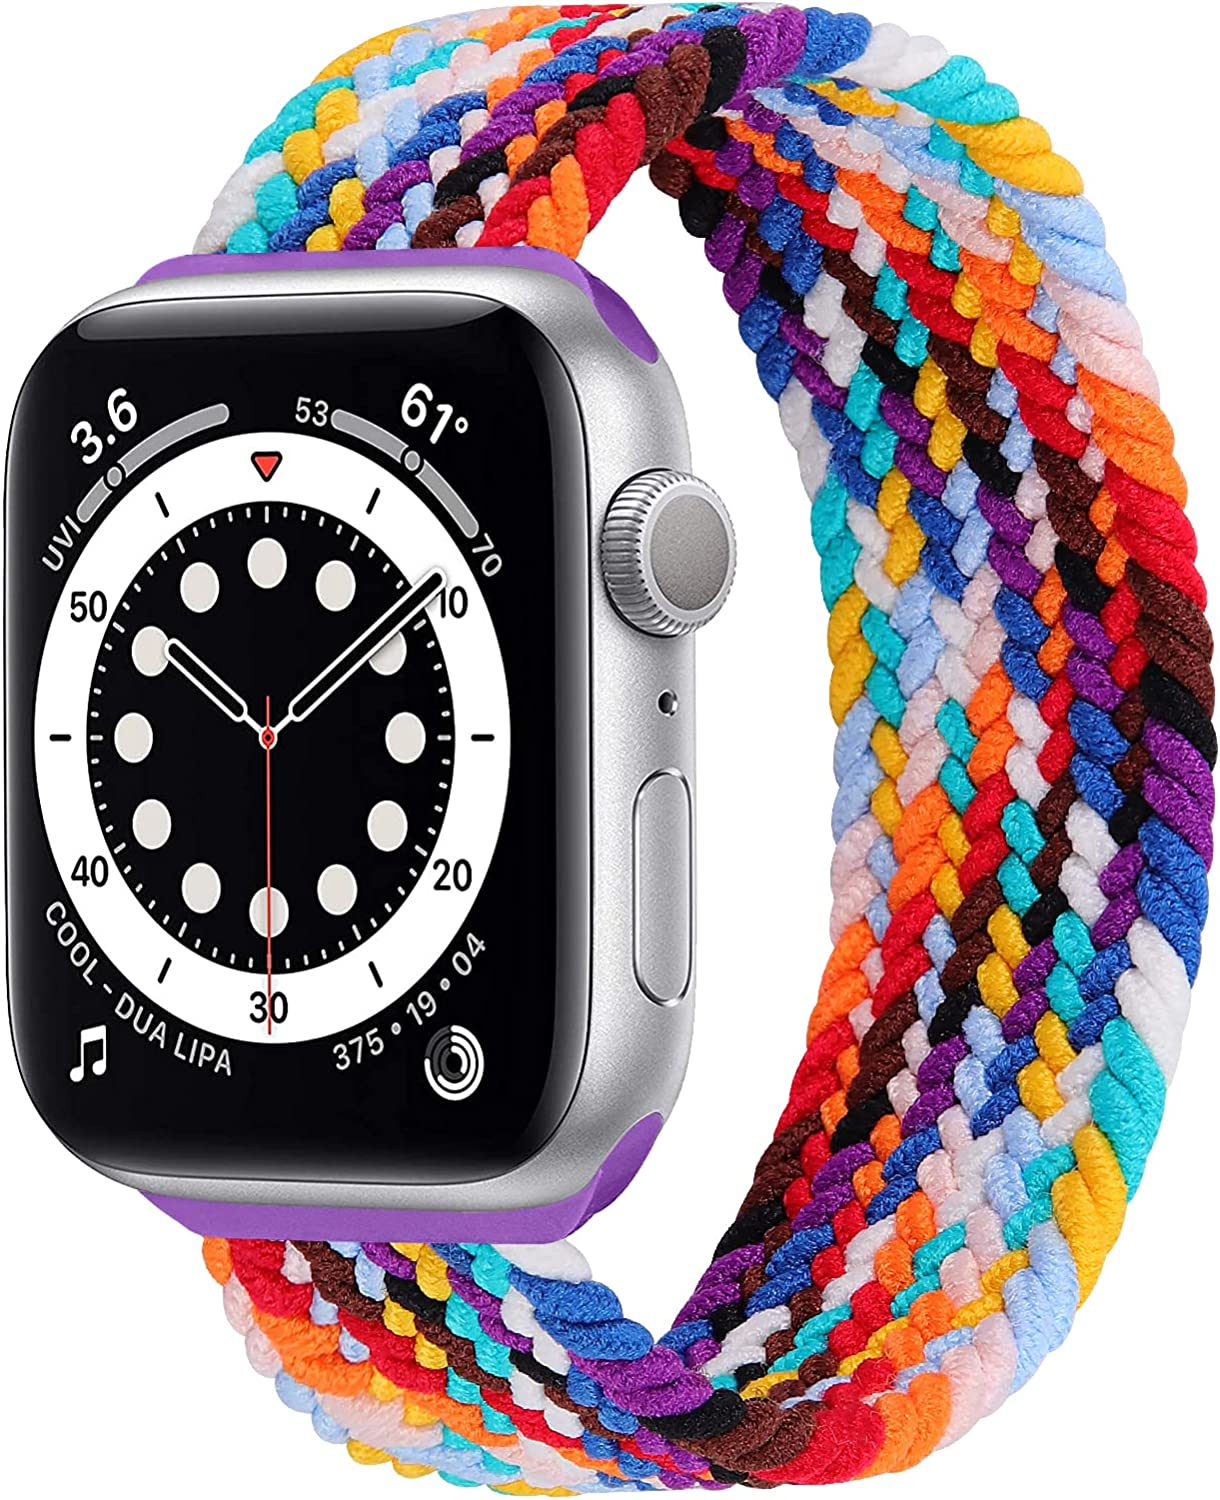 Stretchy Solo Loop Strap Compatible with Apple Watch Bands 38mm 40mm 42mm 44mm, Nylon Stretch Braided Sport Elastics Weave Women Men Wristband Compatible for iWatch SE Series 6 5 4 3 2 1